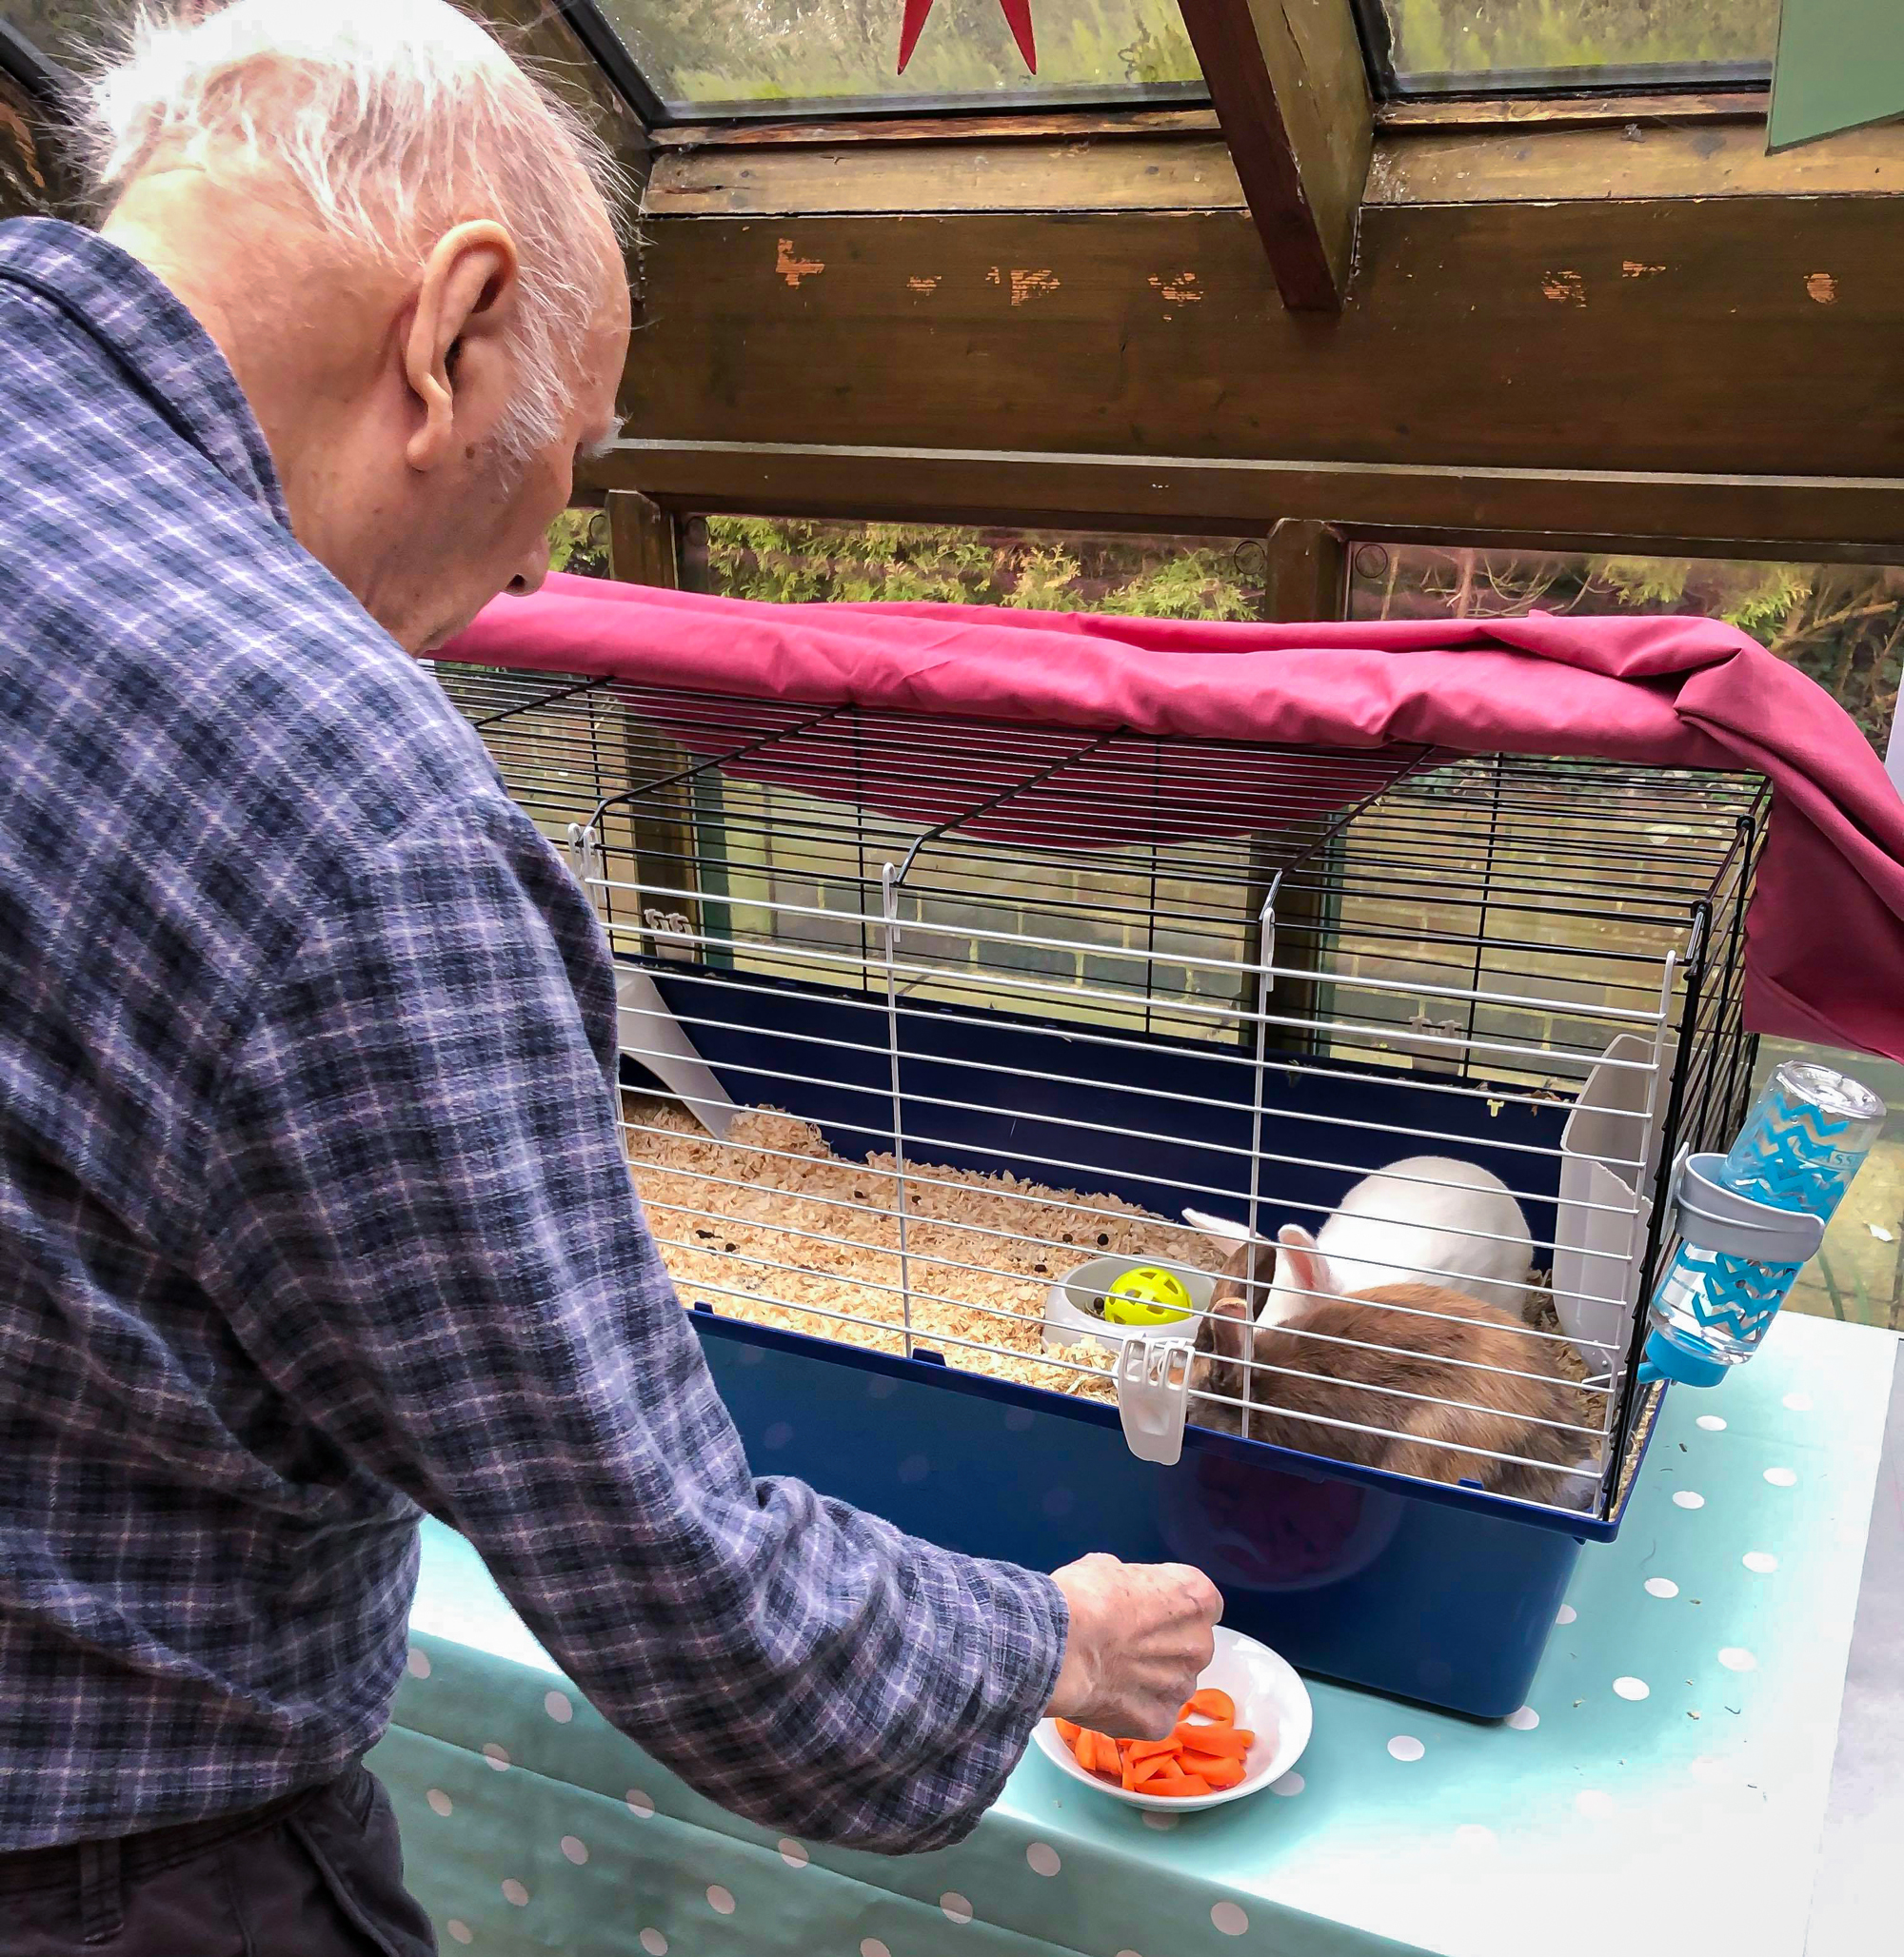 A resident feeding a white and brown rabbit